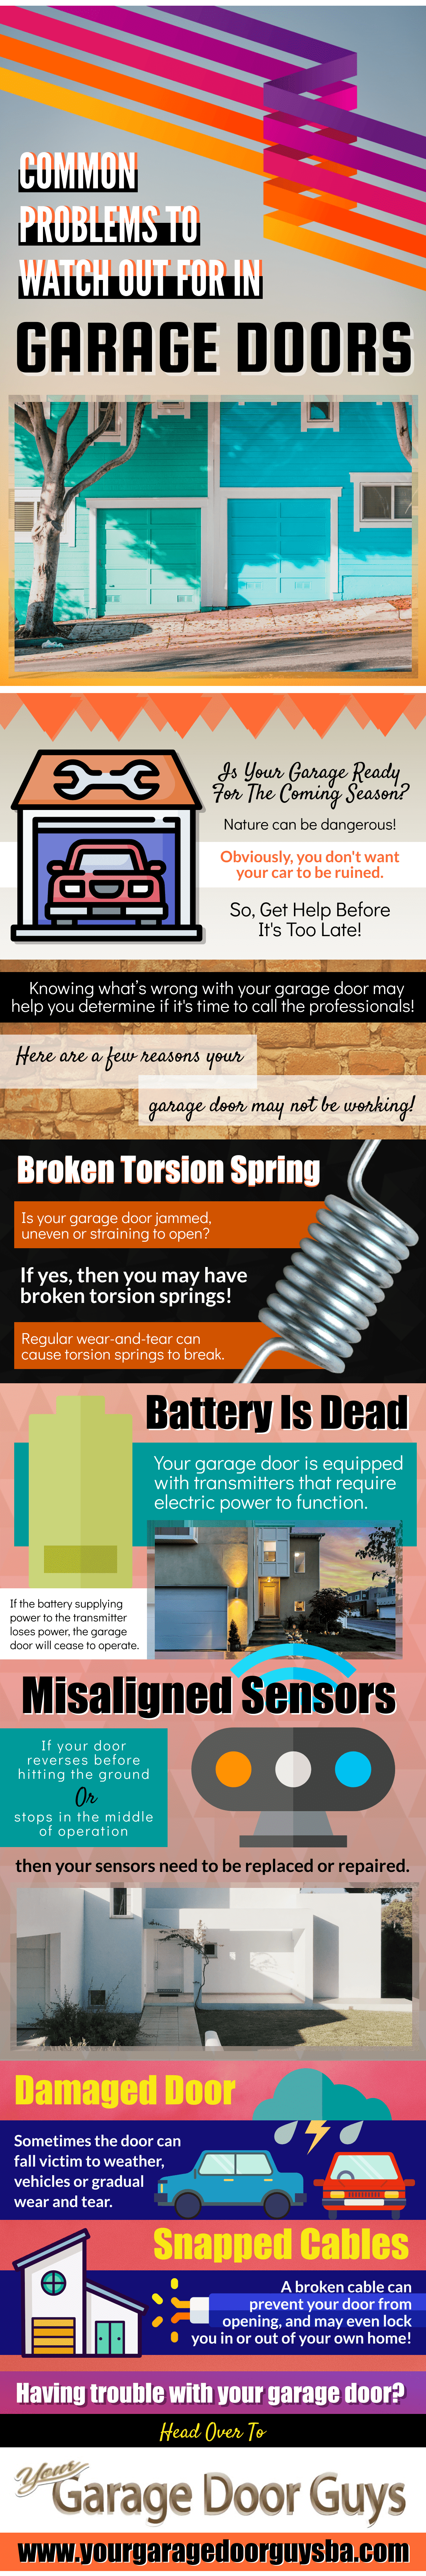 Common Problems To Watch Out For In Garage Doors